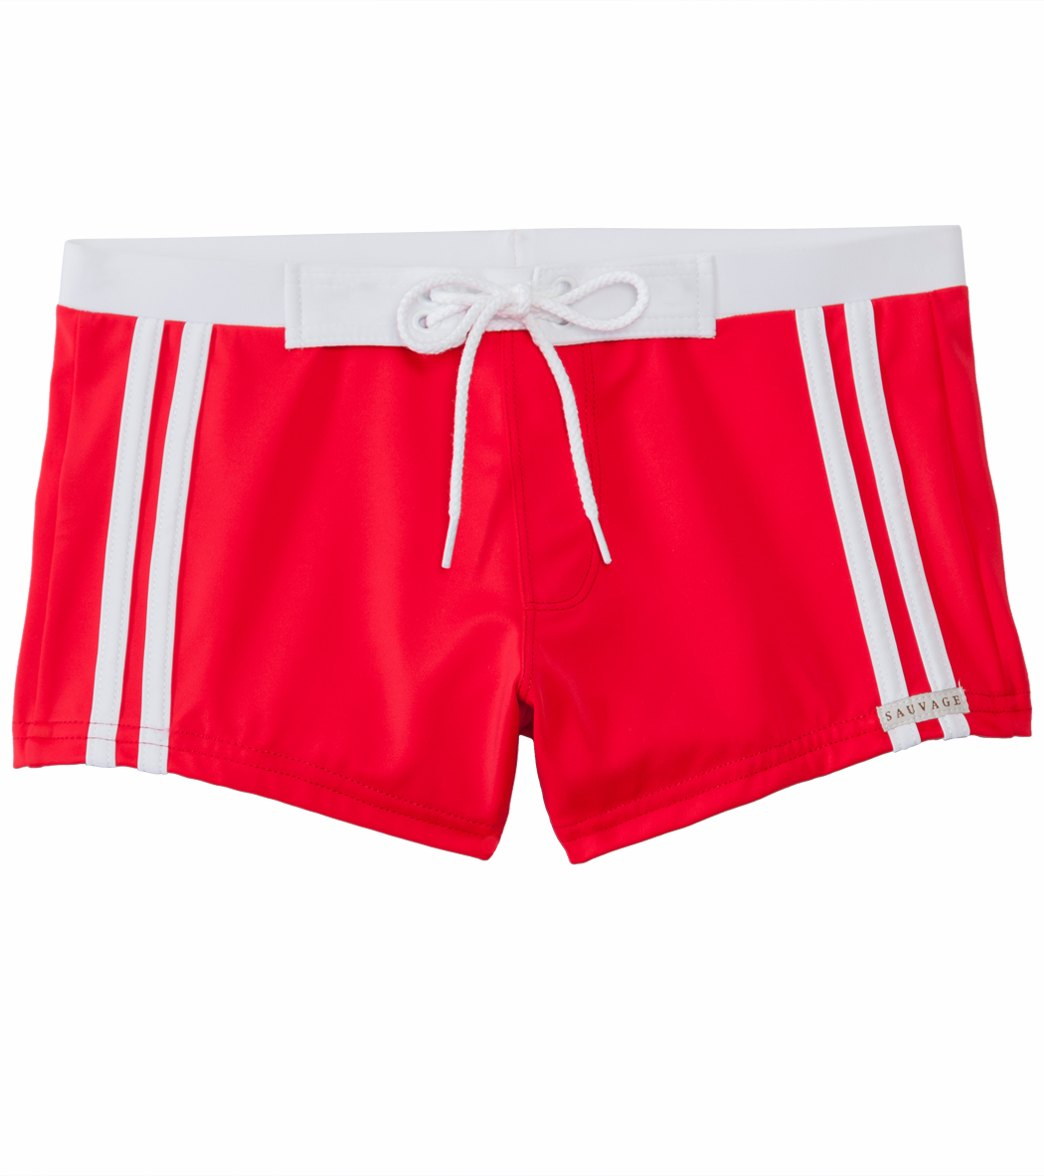 a7cdebf834 Sauvage Riviera Athletic Fit Swim Trunk at SwimOutlet.com - Free Shipping